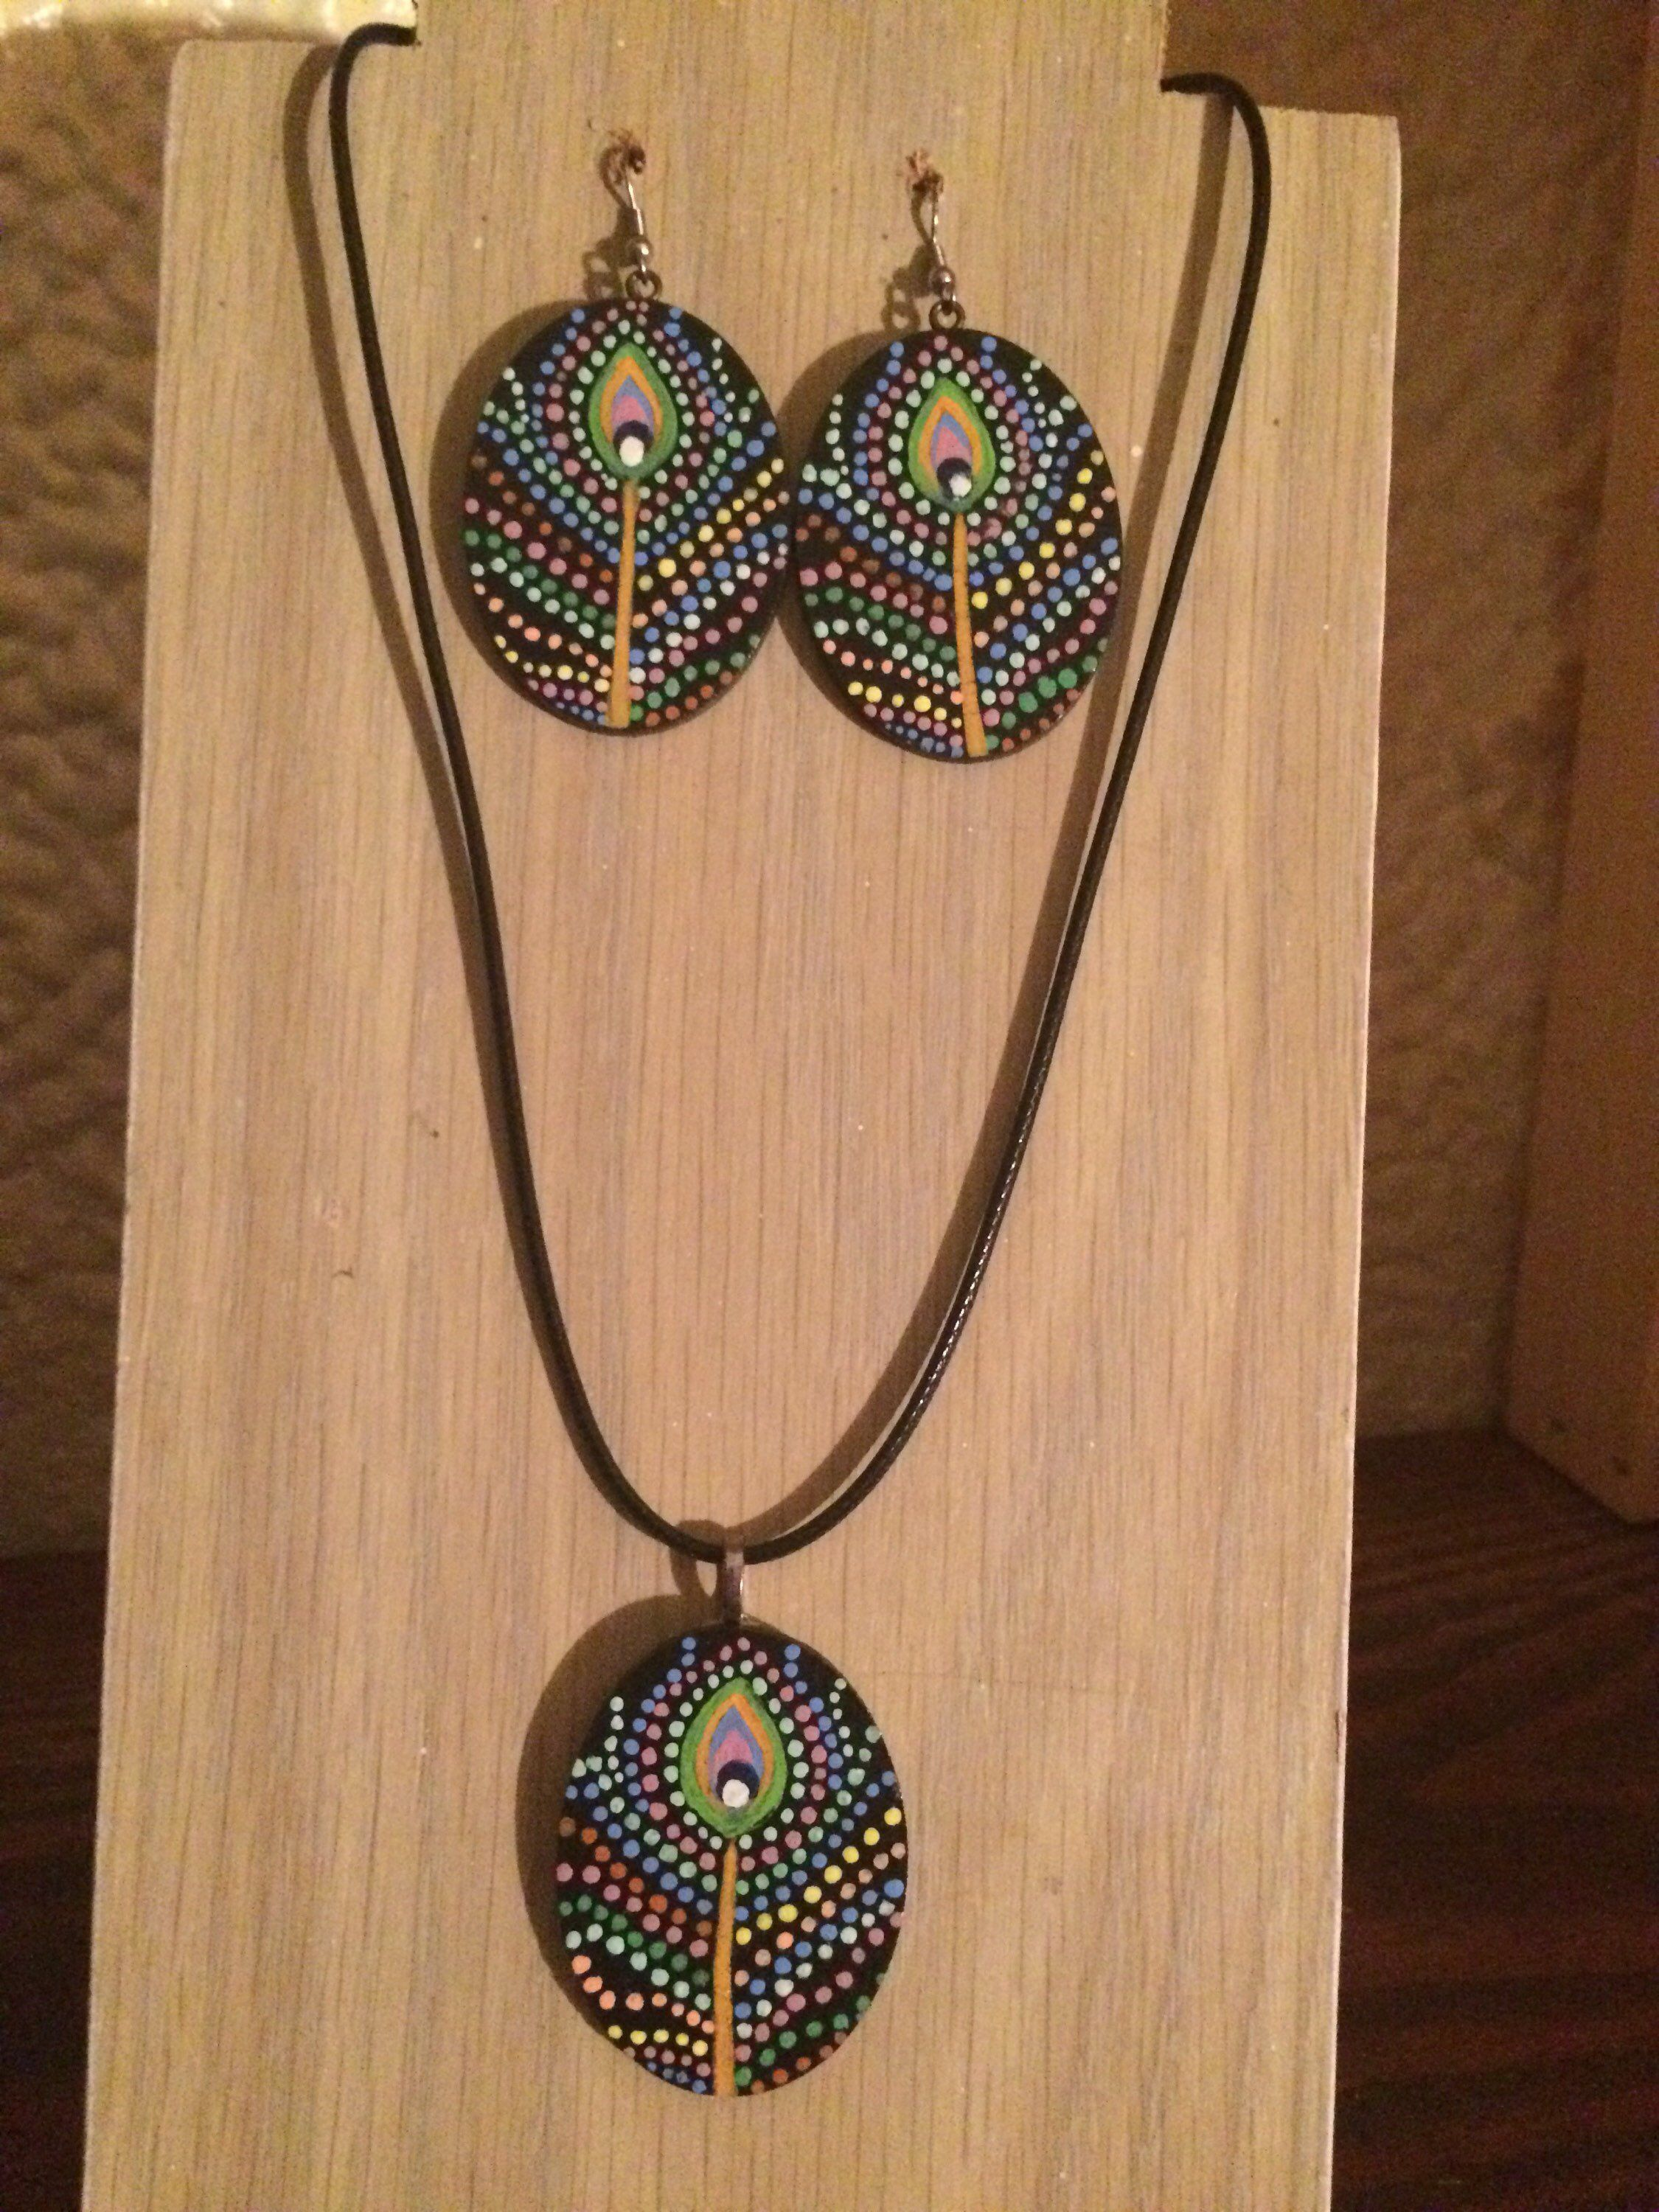 Peacock Feather Dotted Necklace Pendant And Earring Set Etsy Hand Painted Jewelry Painted Wood Jewelry Wooden Bead Jewelry